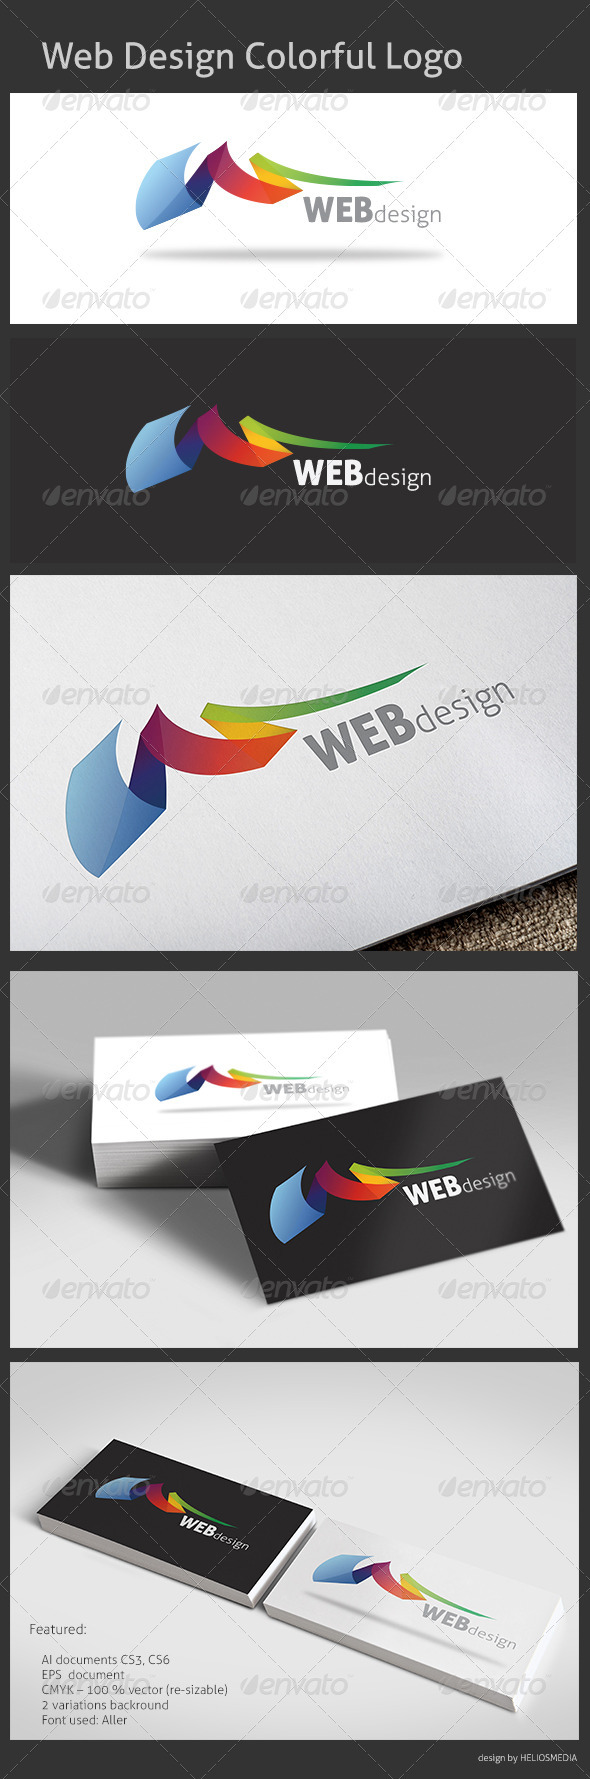 Web Design Colorful Logo - Abstract Logo Templates